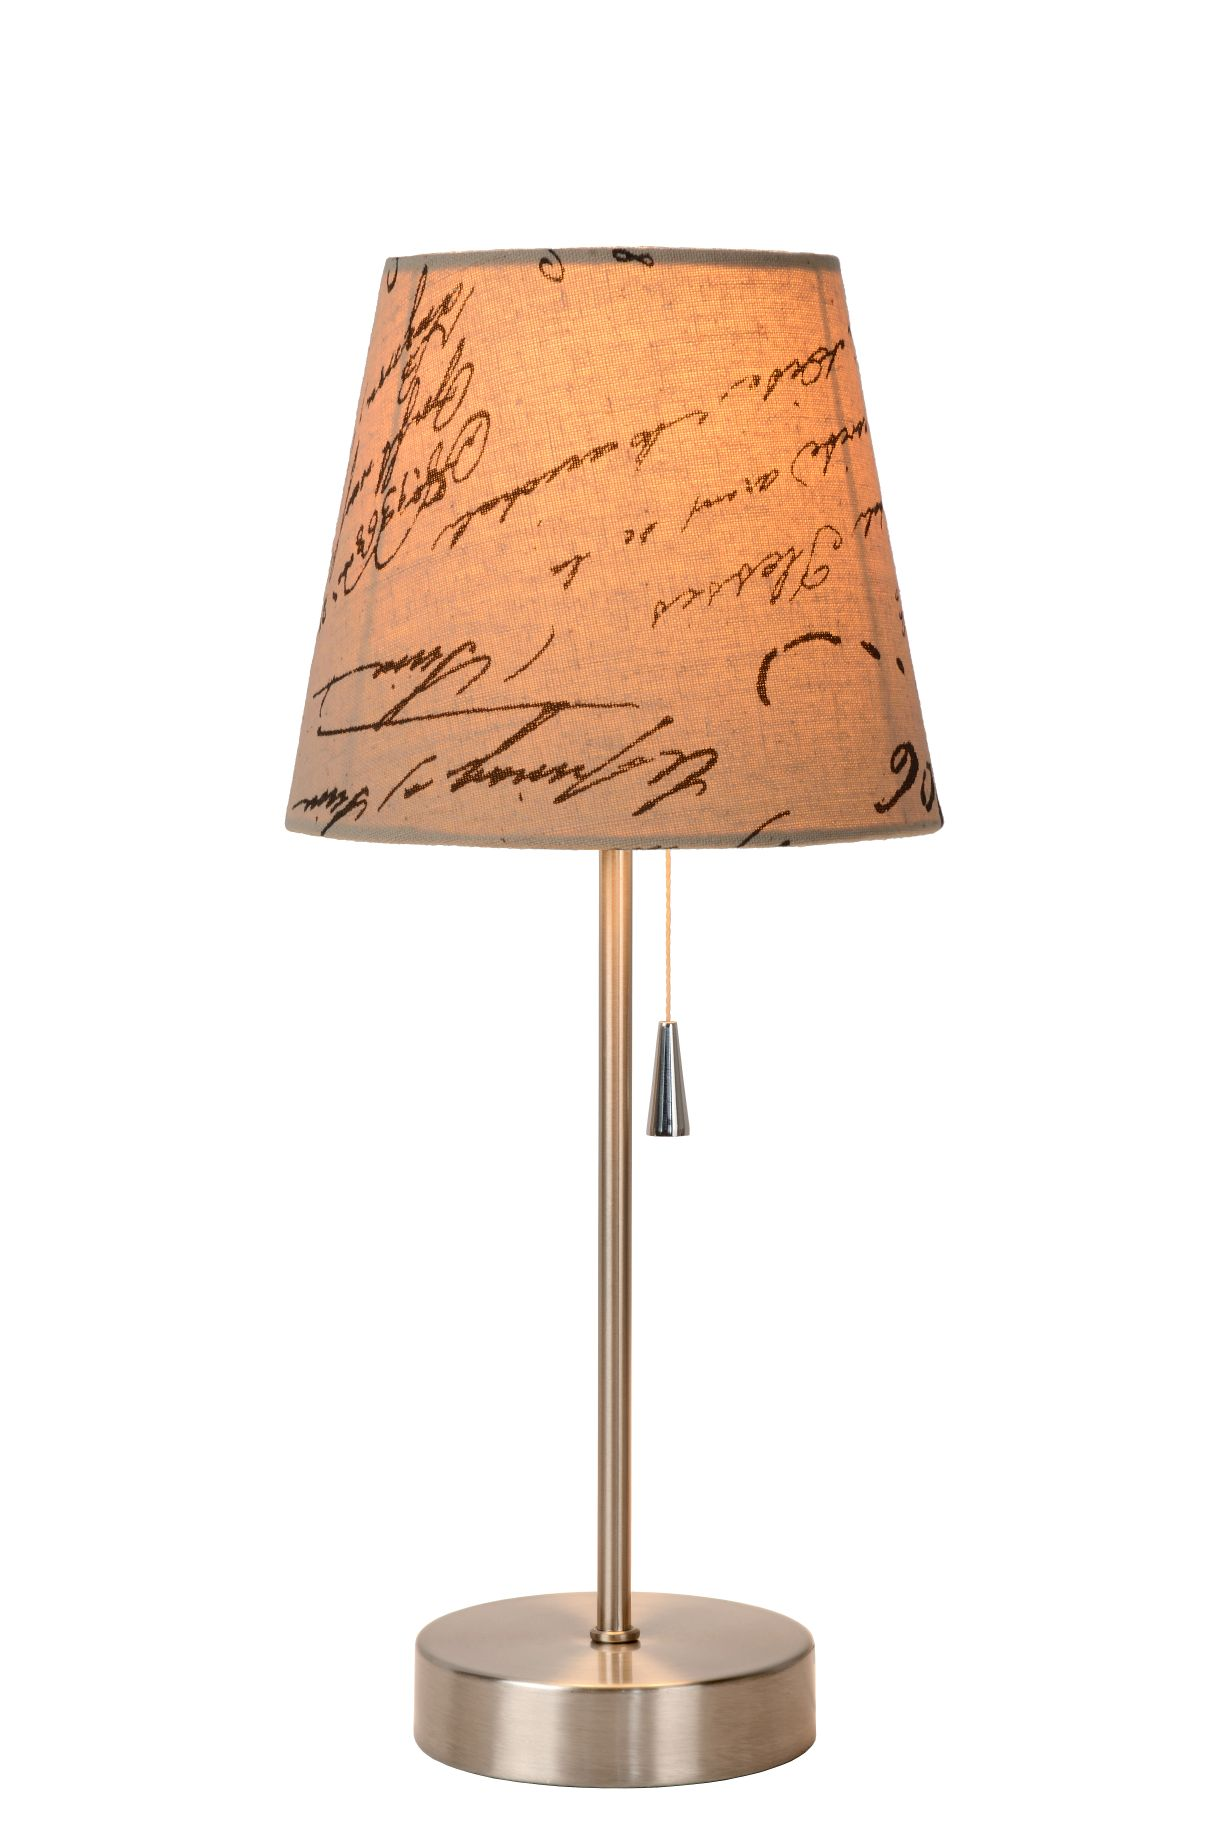 YOKO Table lamp E27 H40.5 Shade 12/18/15Text print